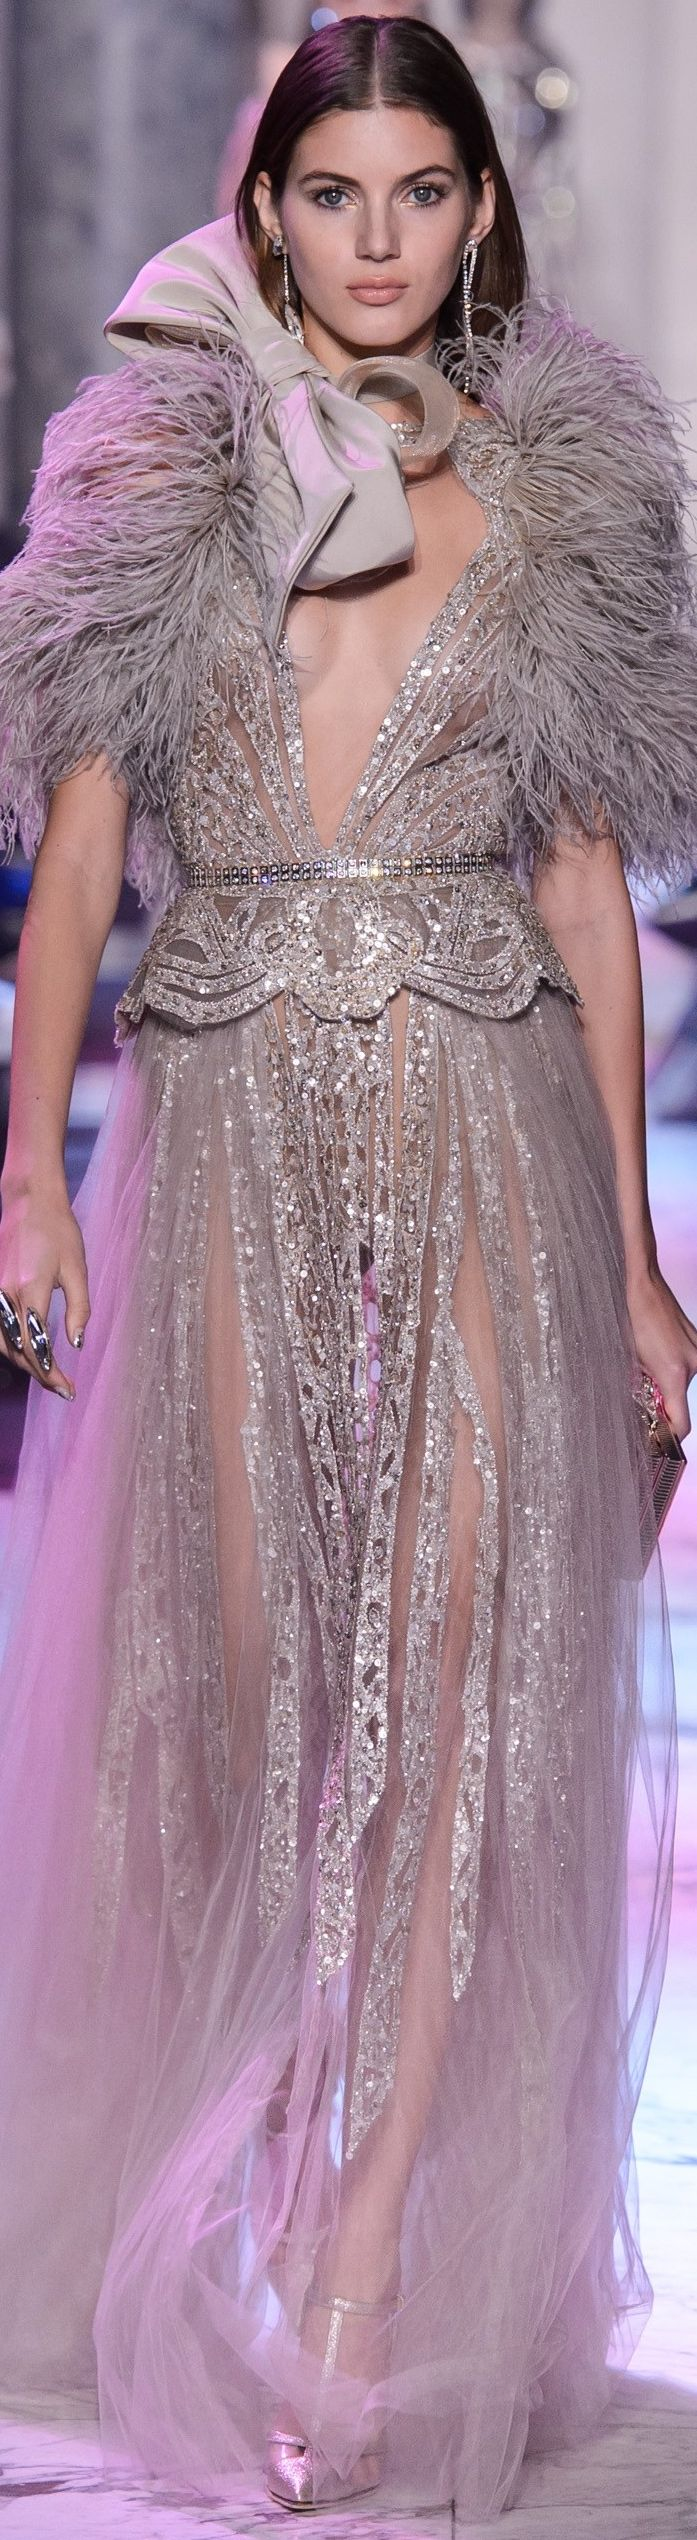 Elie Saab Spring 2018 Couture♪ƸӜƷ❣  #SweEts  ♛♪  #Sg33¡¡¡  ✿ ❀¸¸¸.•*´¯`